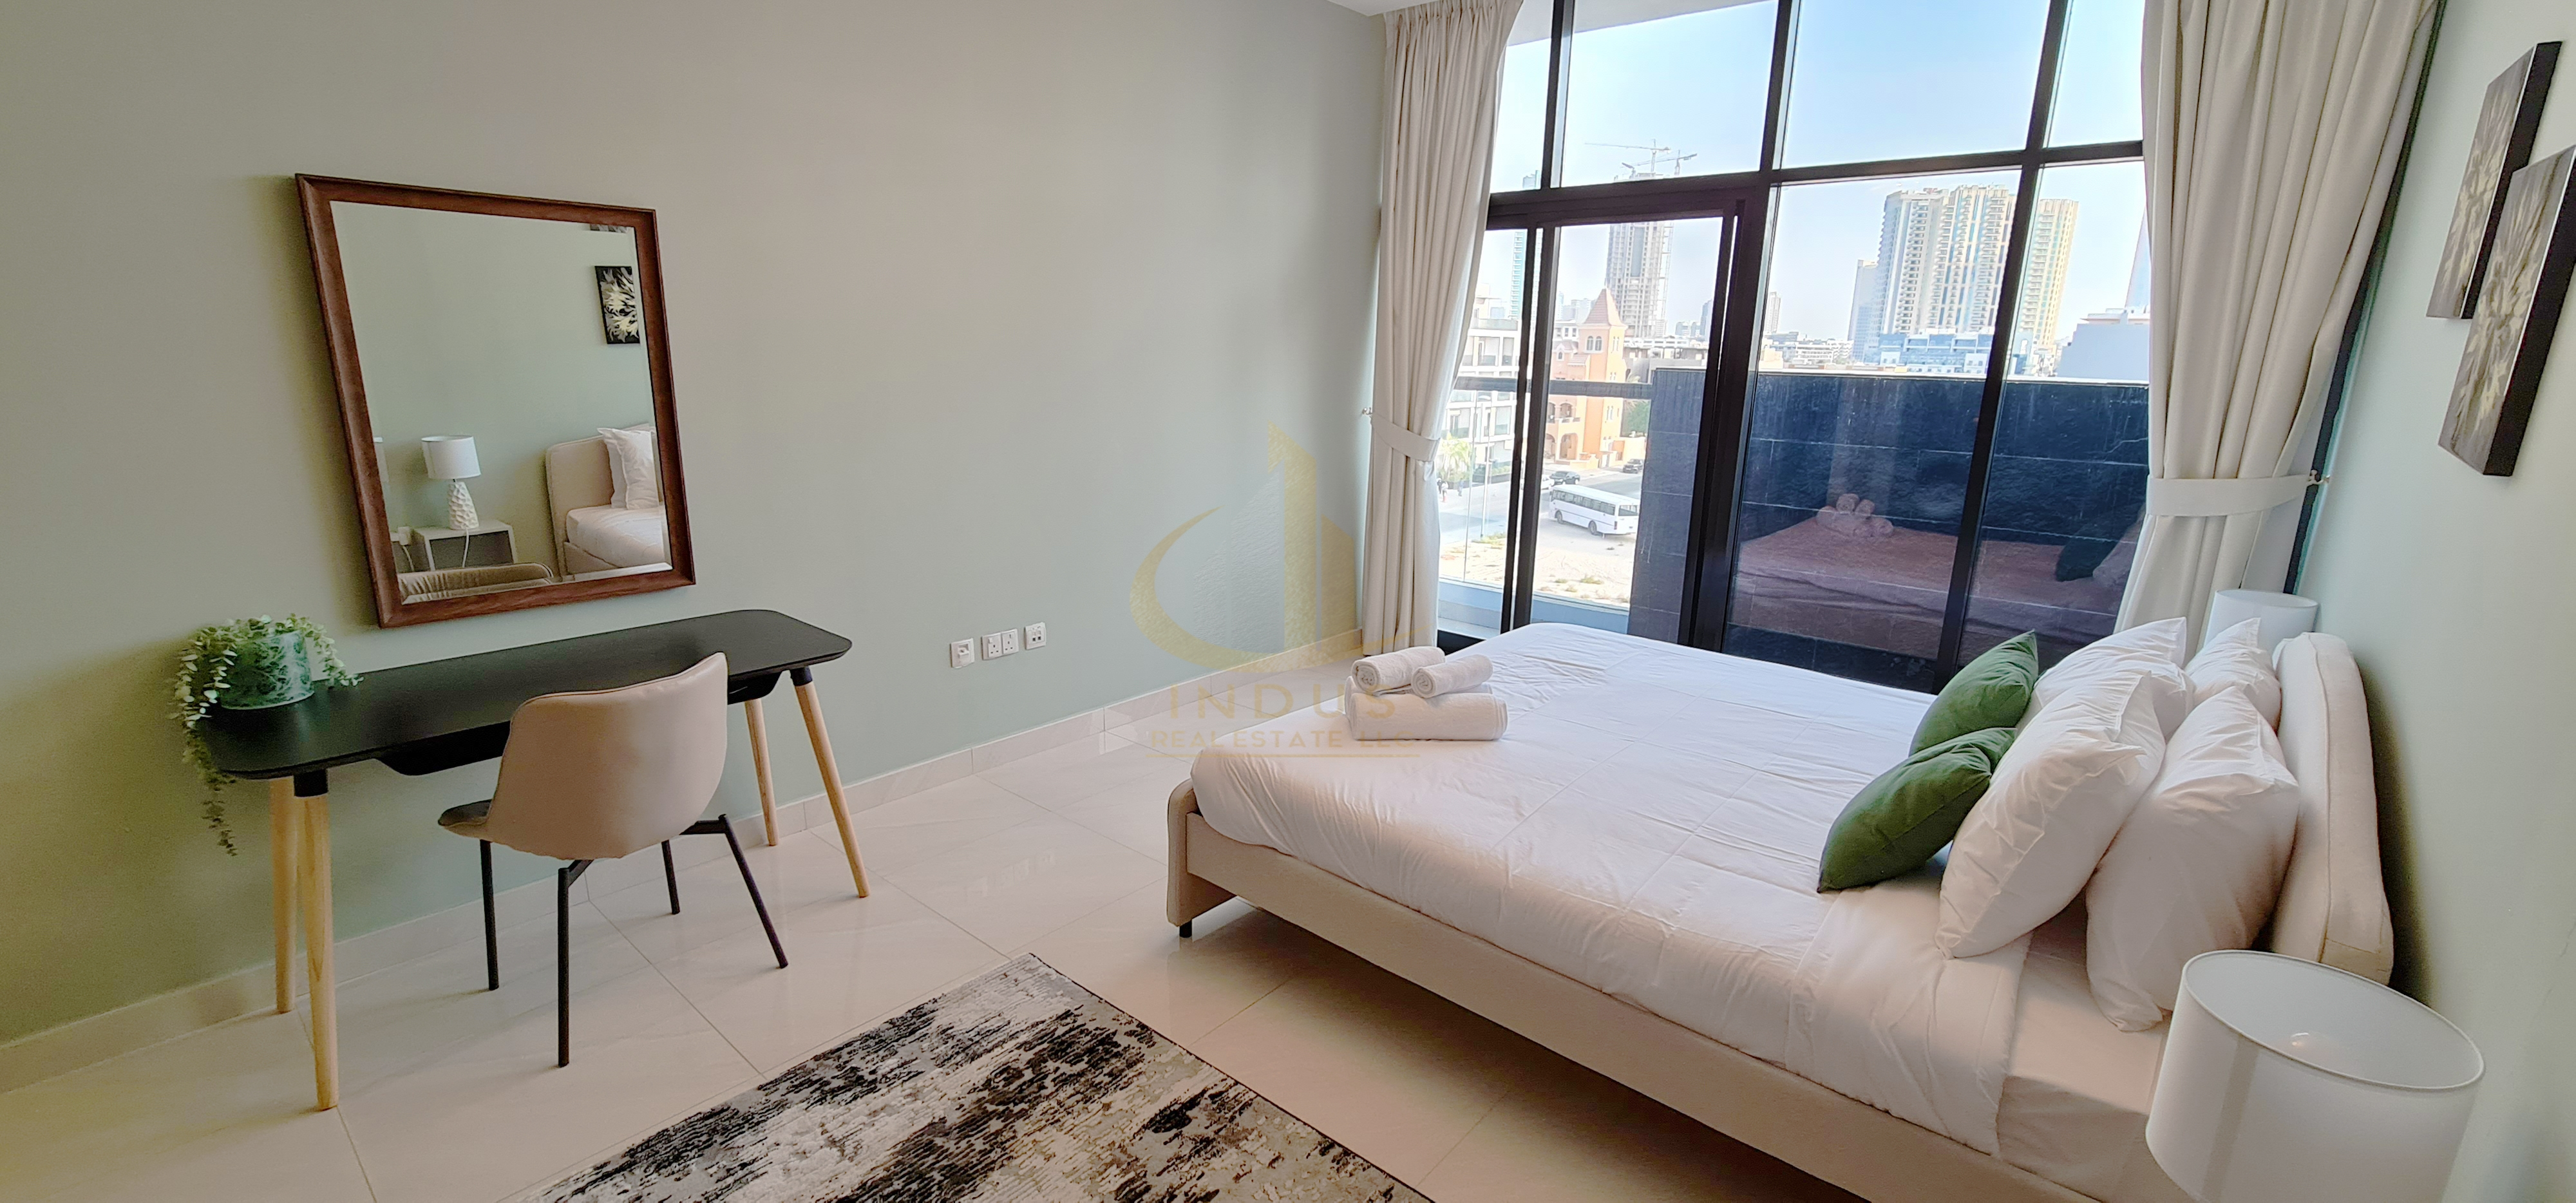 1 Bedroom + Study | Pool View | Multiple Options | Spacious Main image